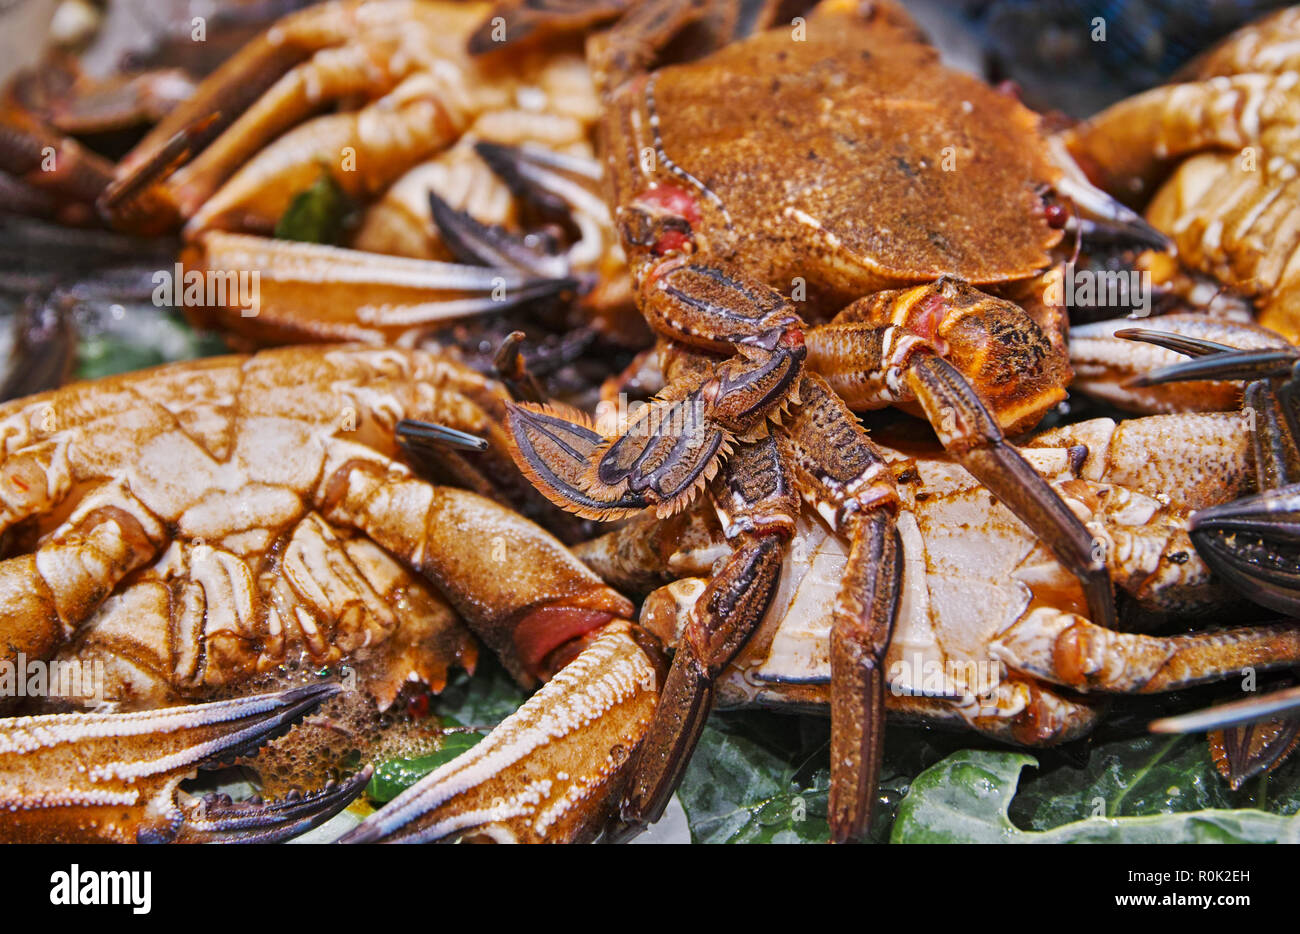 crabs in the market - Stock Image